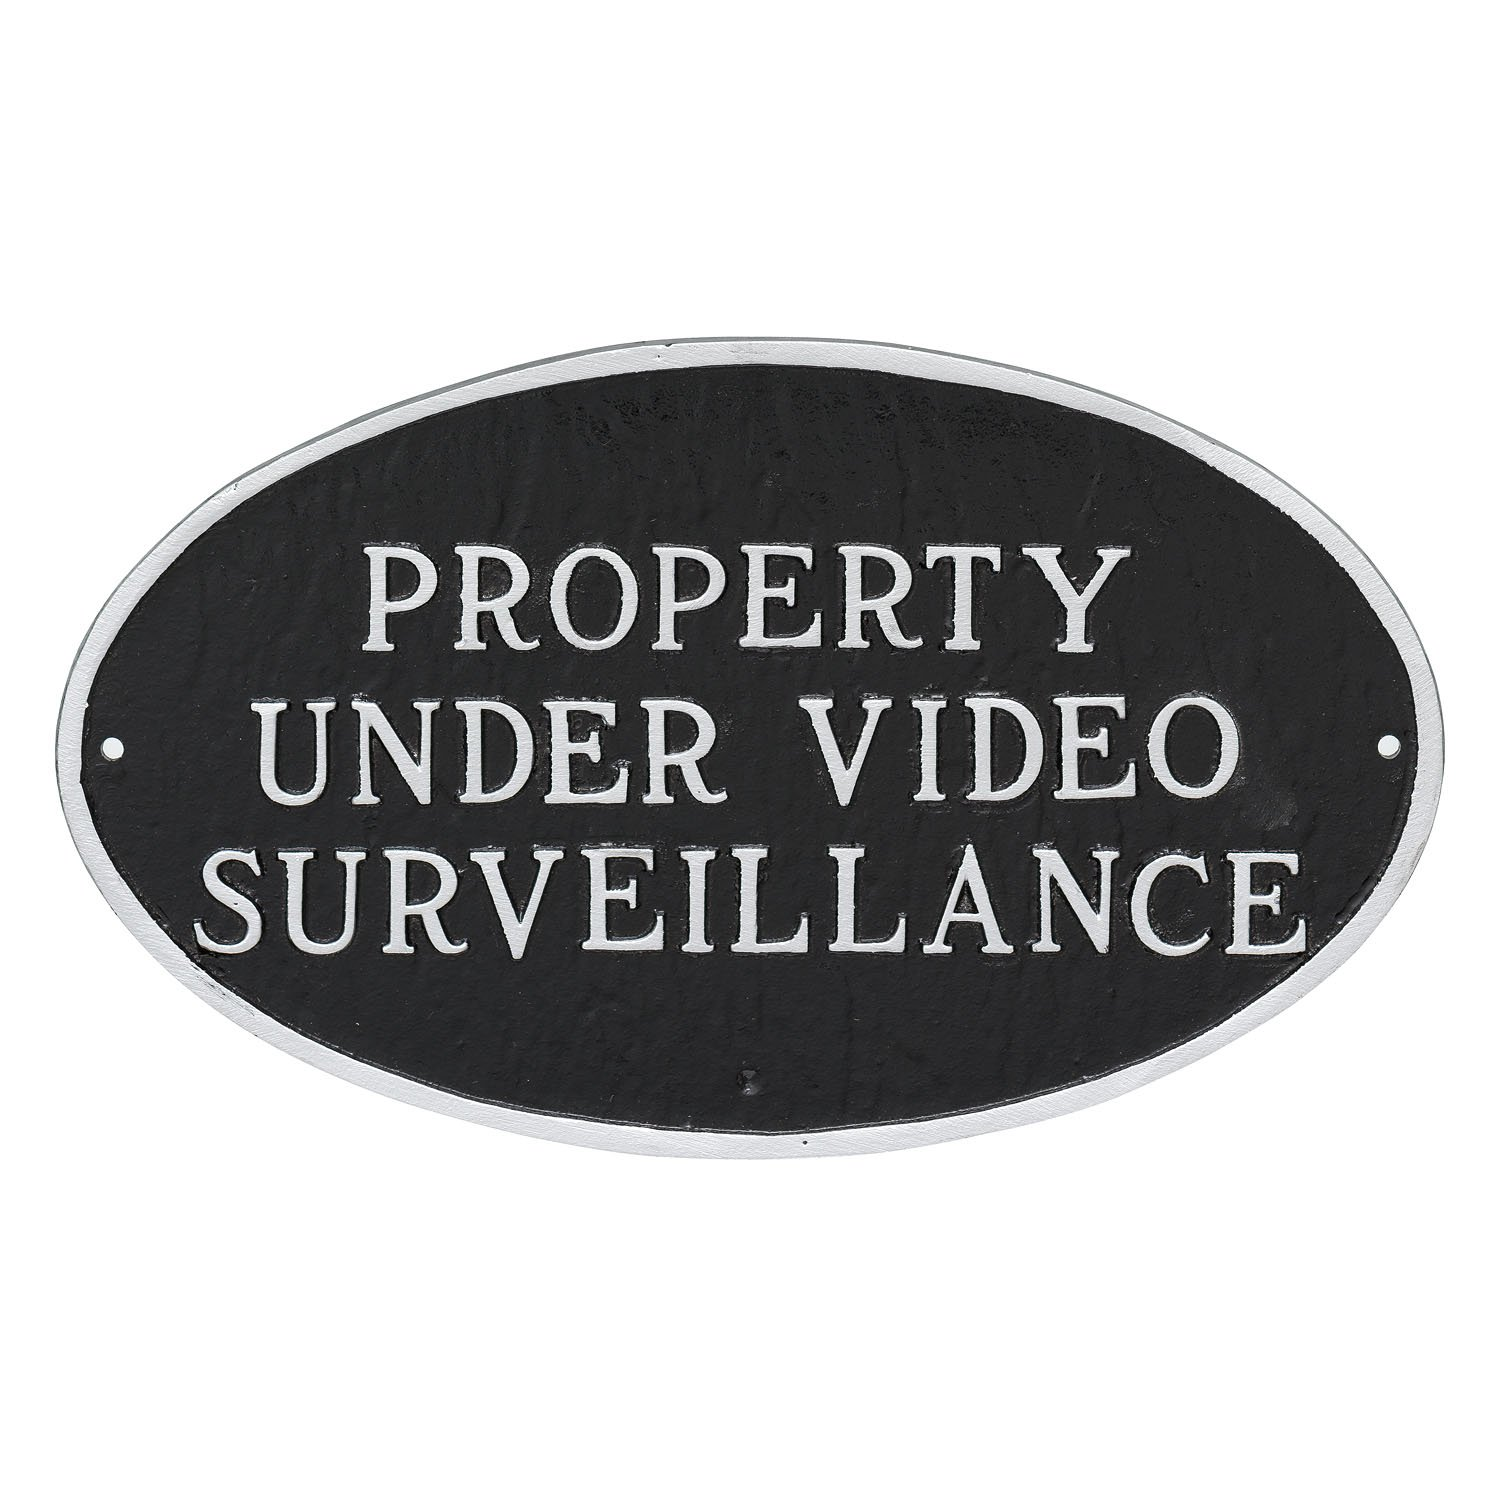 Montague Metal Products Property Under Video Surveillance Statement Plaque, Black with Silver Letter, 6'' x 10''